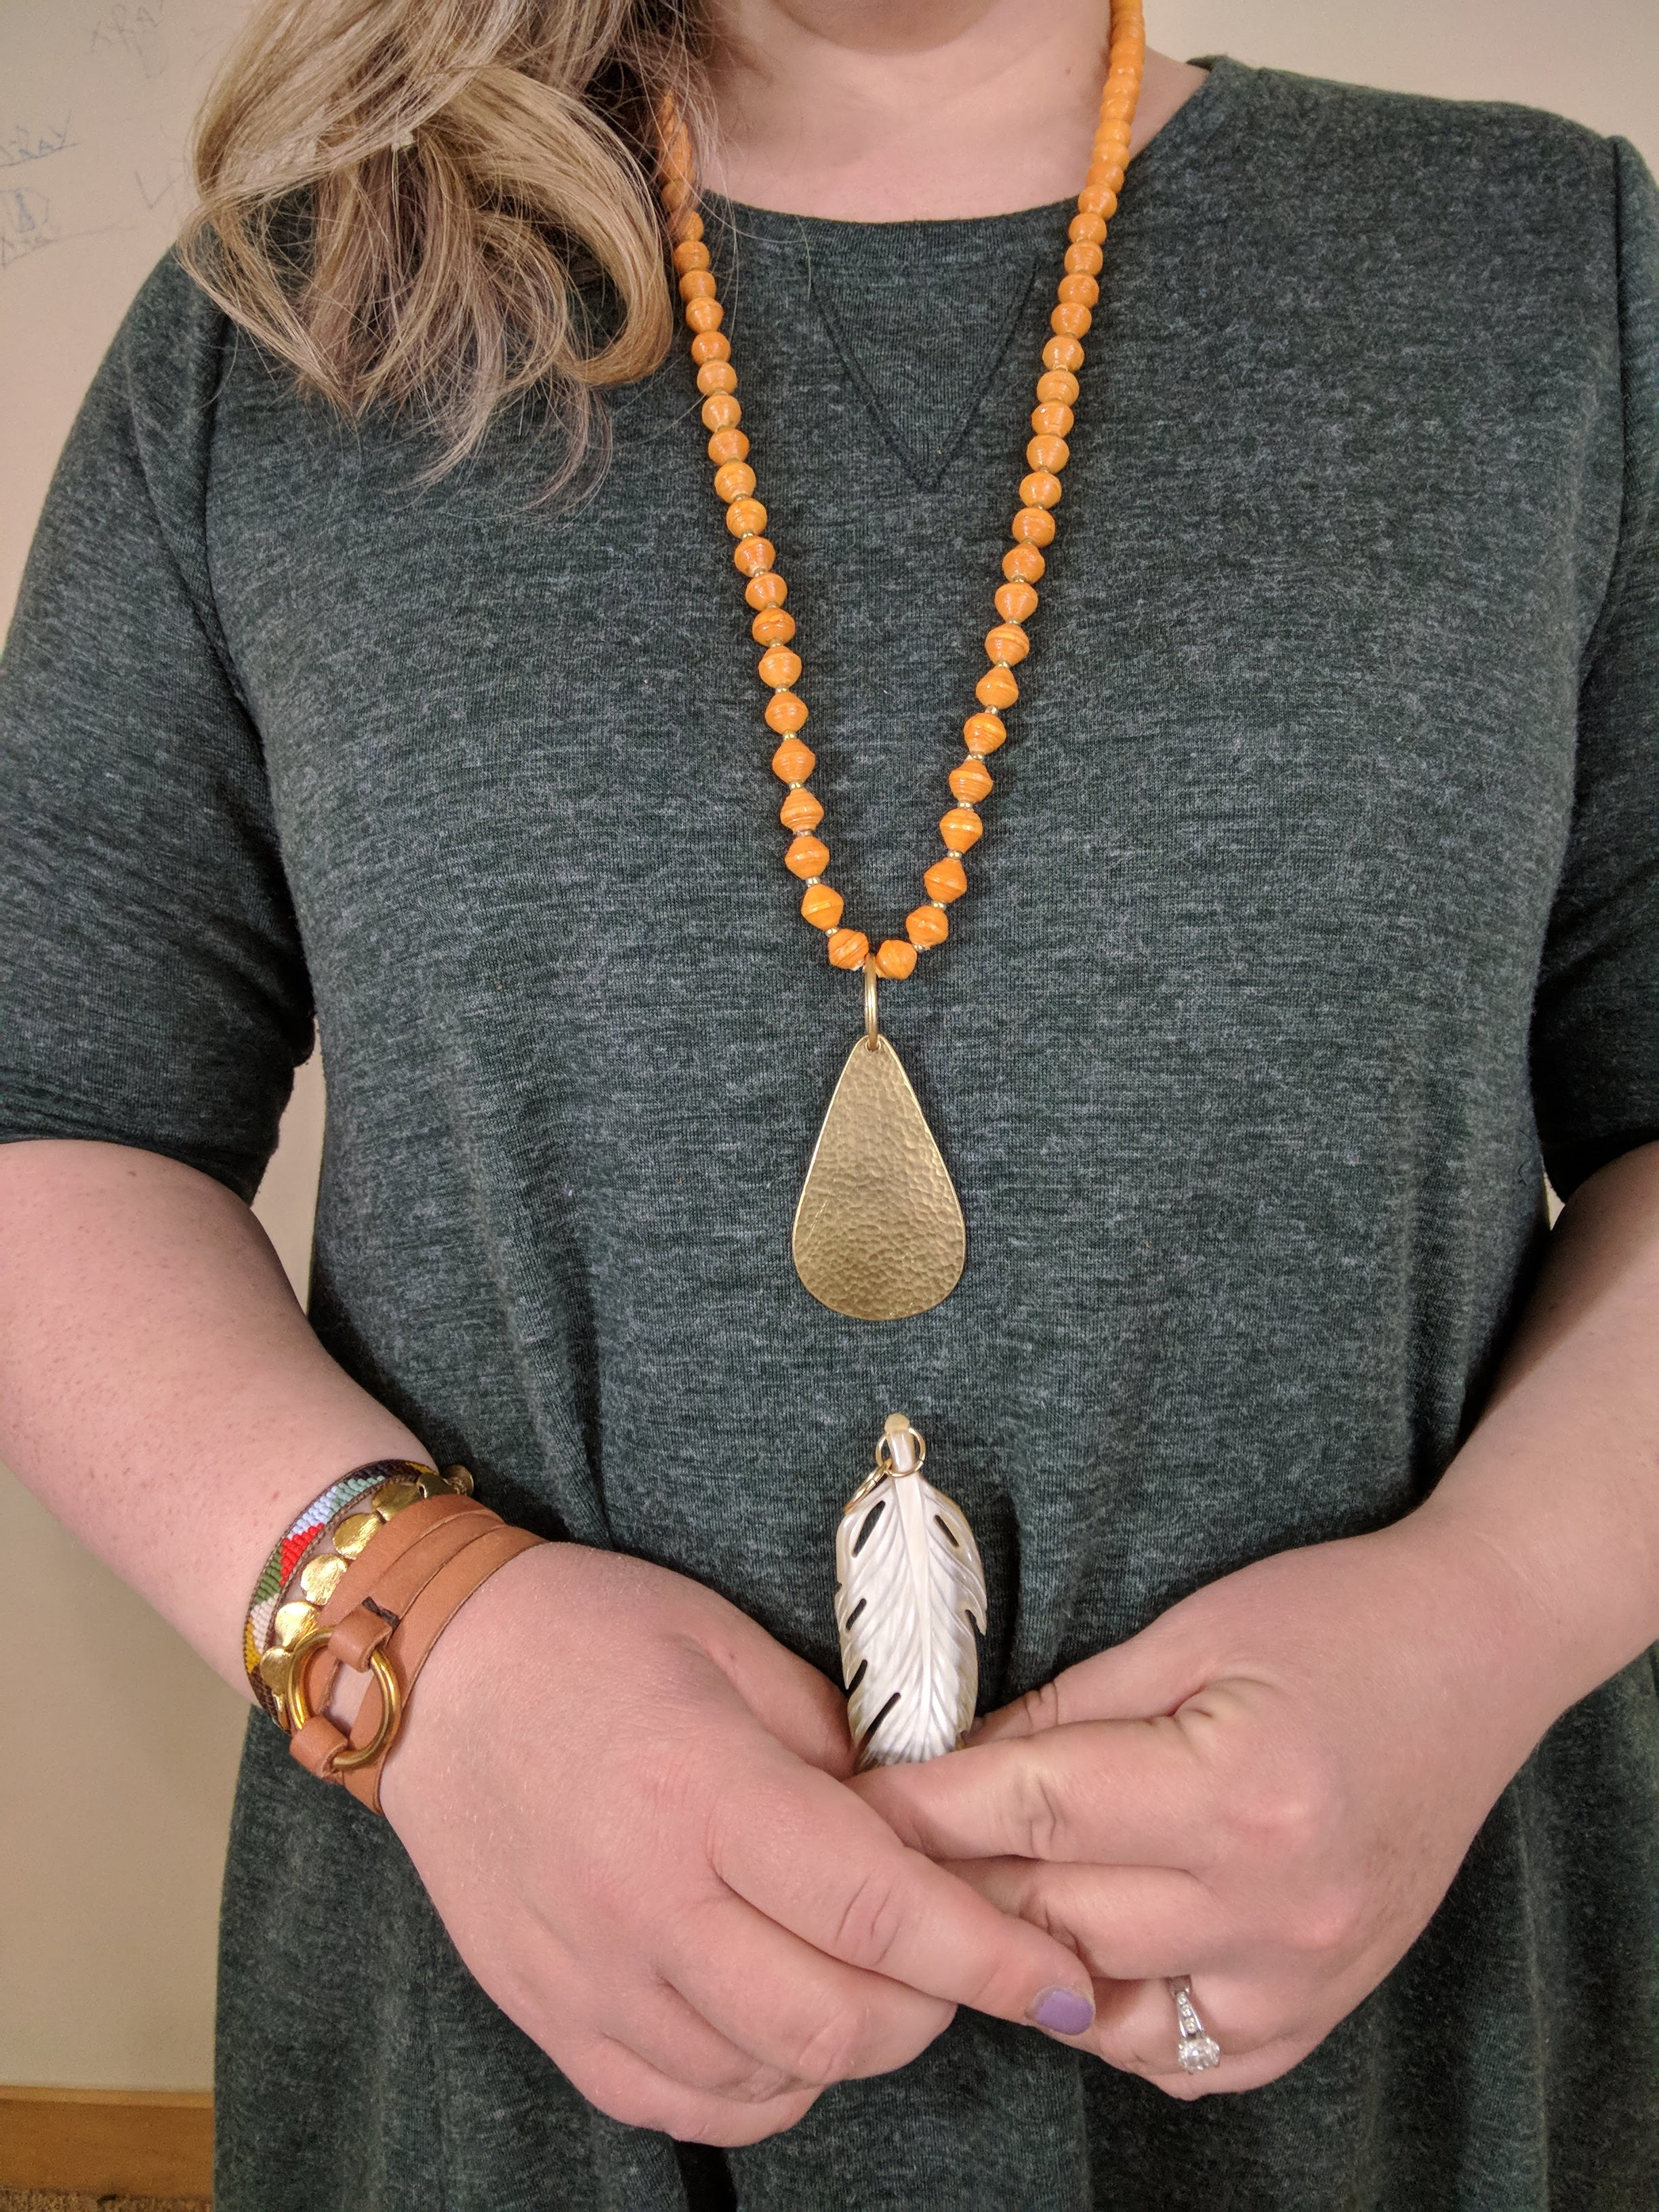 Noonday Collection's fair trade Inspire Necklaces, made of paper beads, can be swapped out with the Abundant, Faith, and Rise Pendants for a customized look.